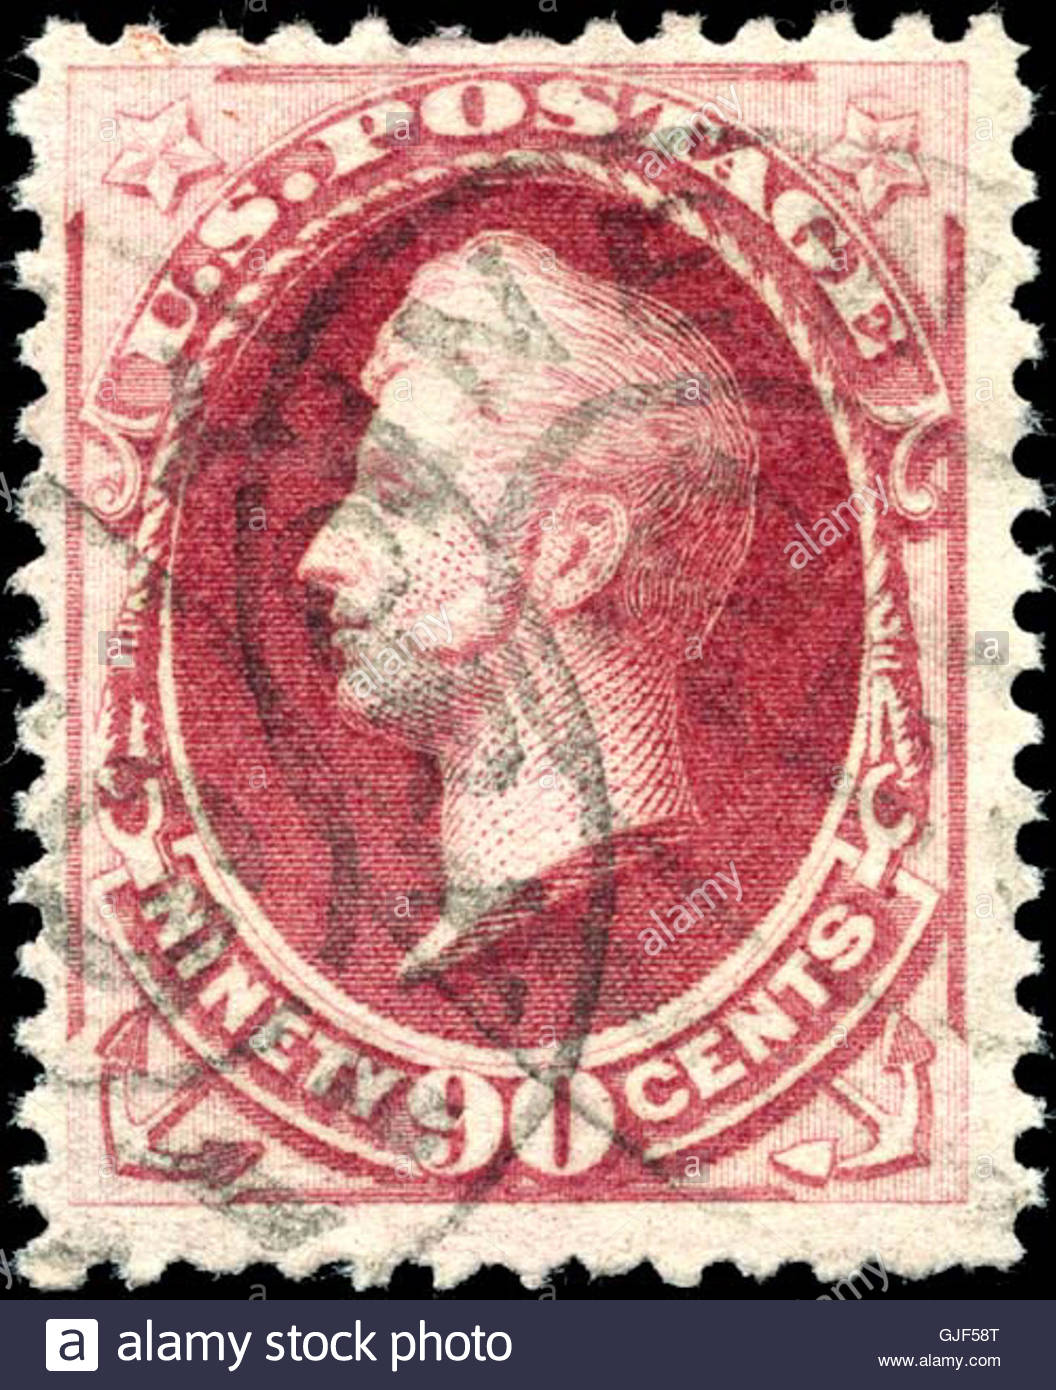 stamp-us-1879-90c-perry-GJF58T.jpg